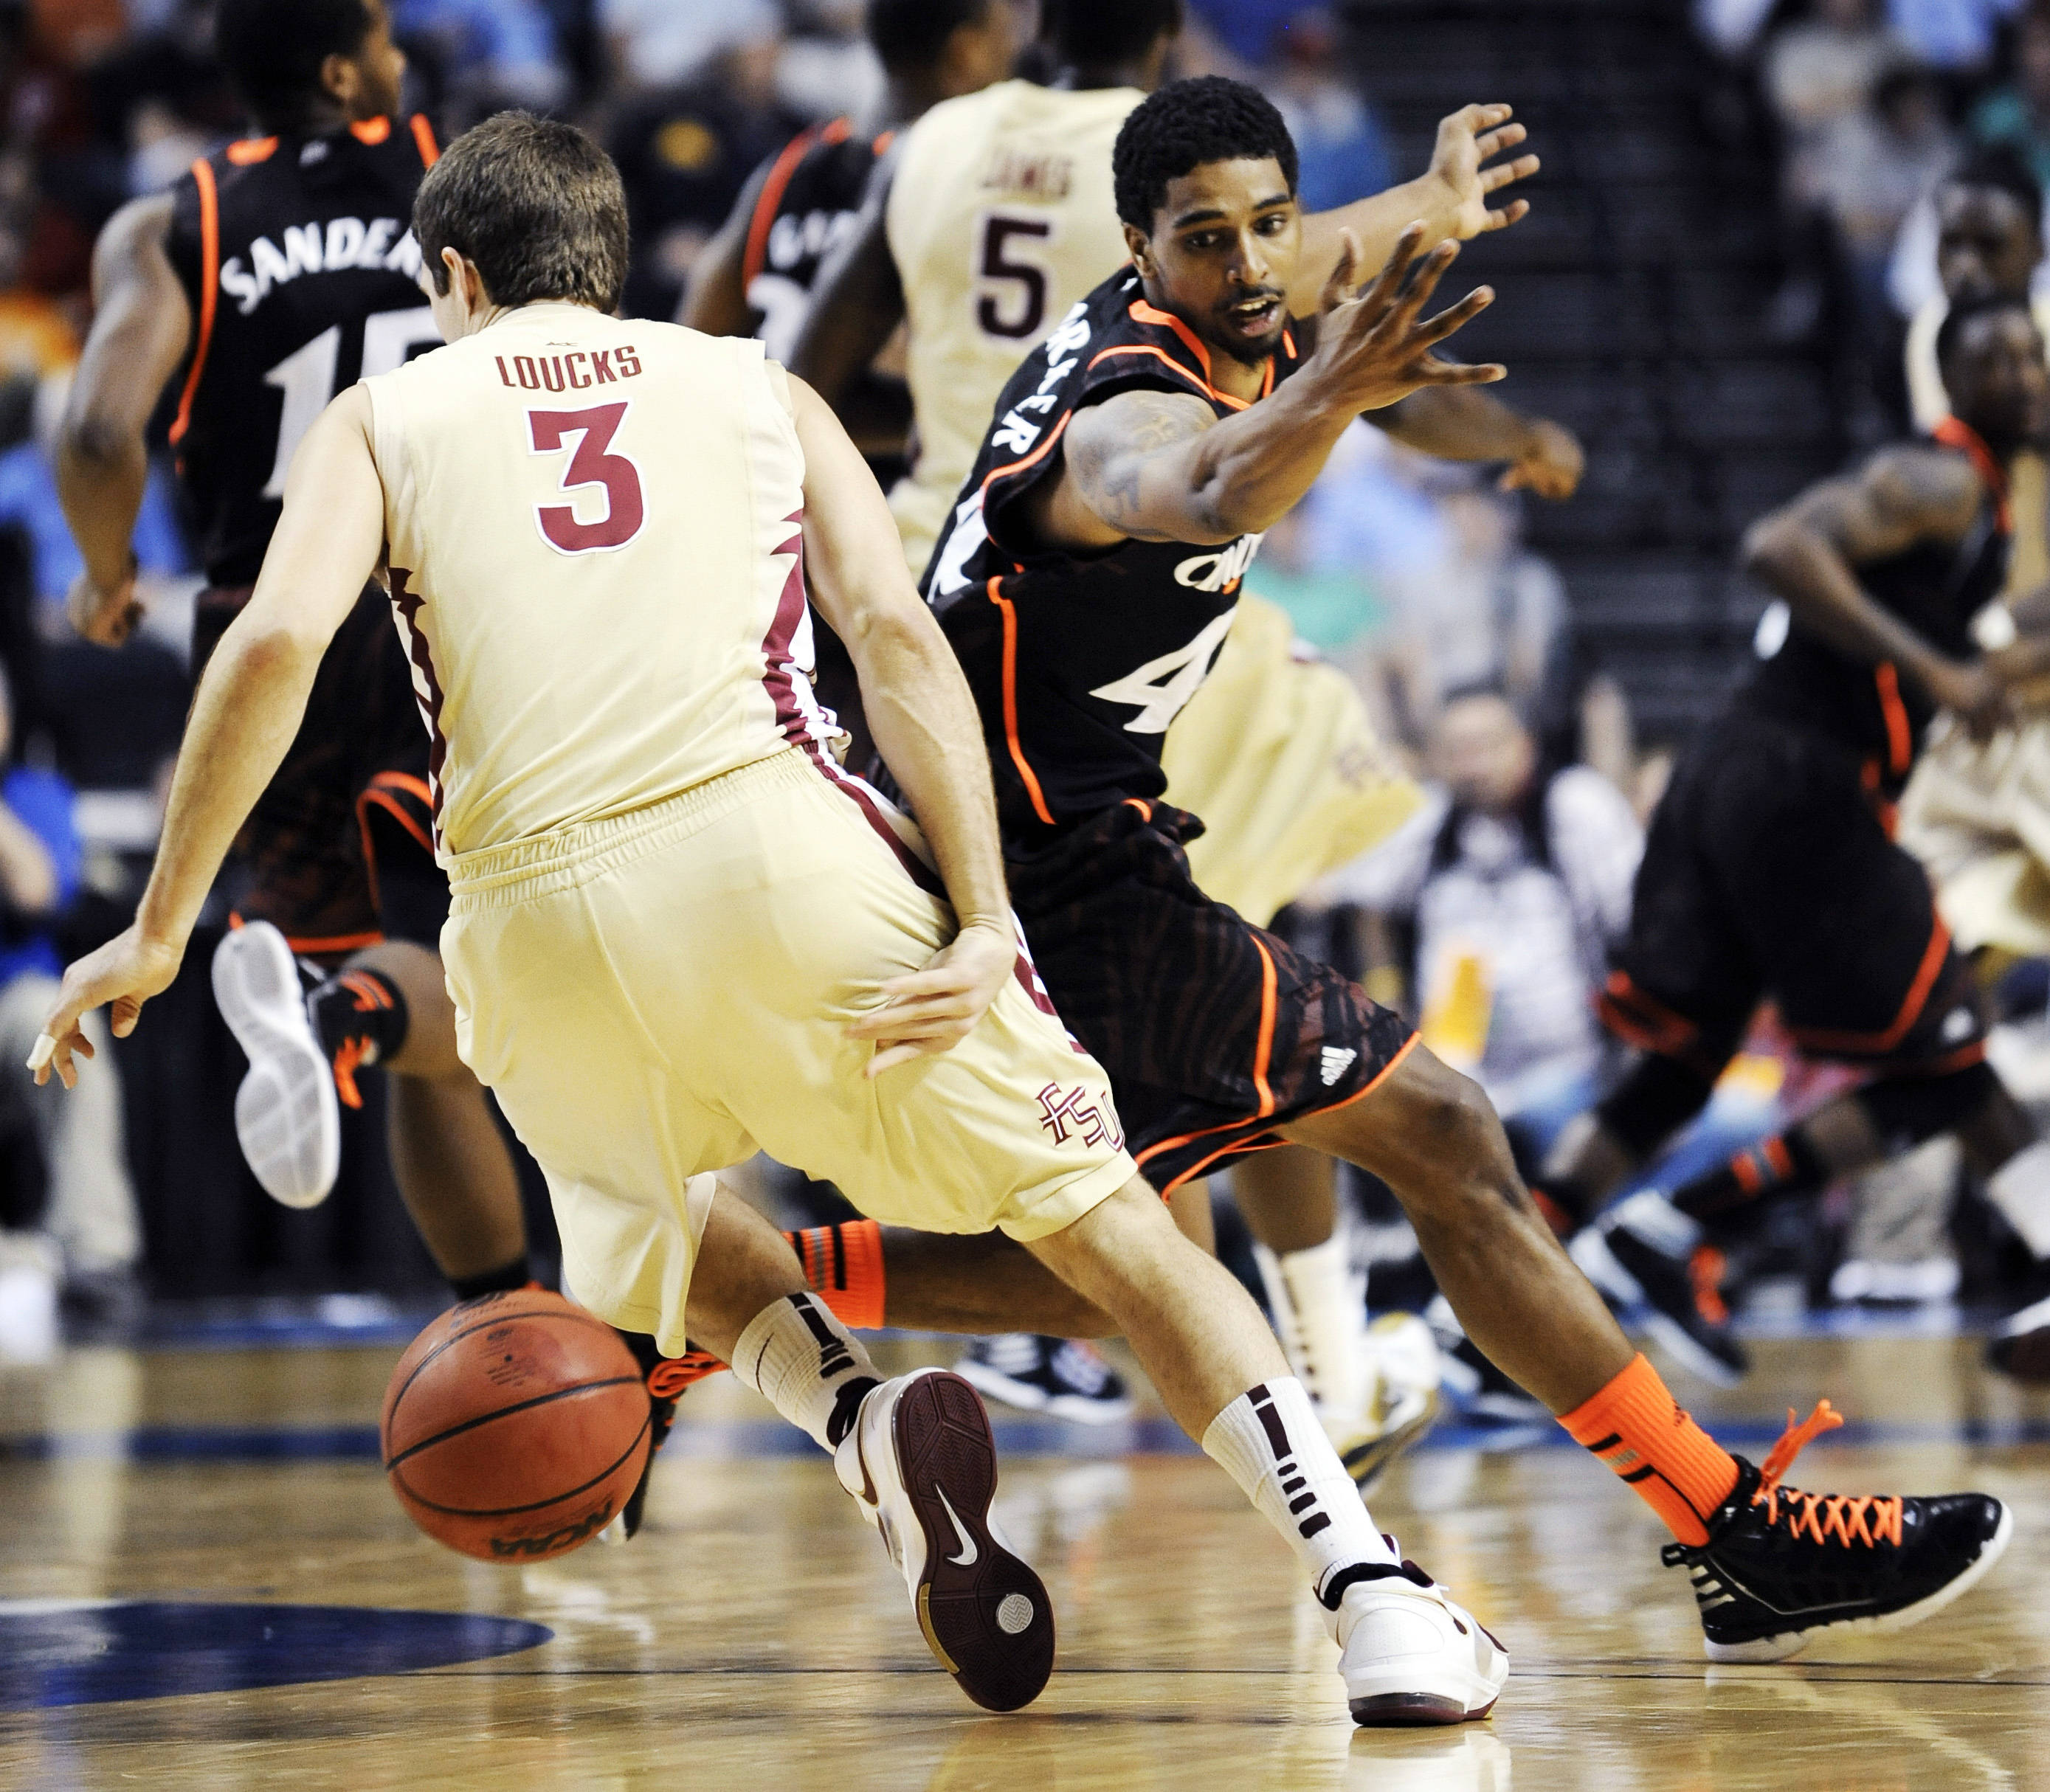 Florida State guard Luke Loucks (3) dribbles behind his back to get past Cincinnati guard Jaquon Parker (44). (AP Photo/Donn Jones)